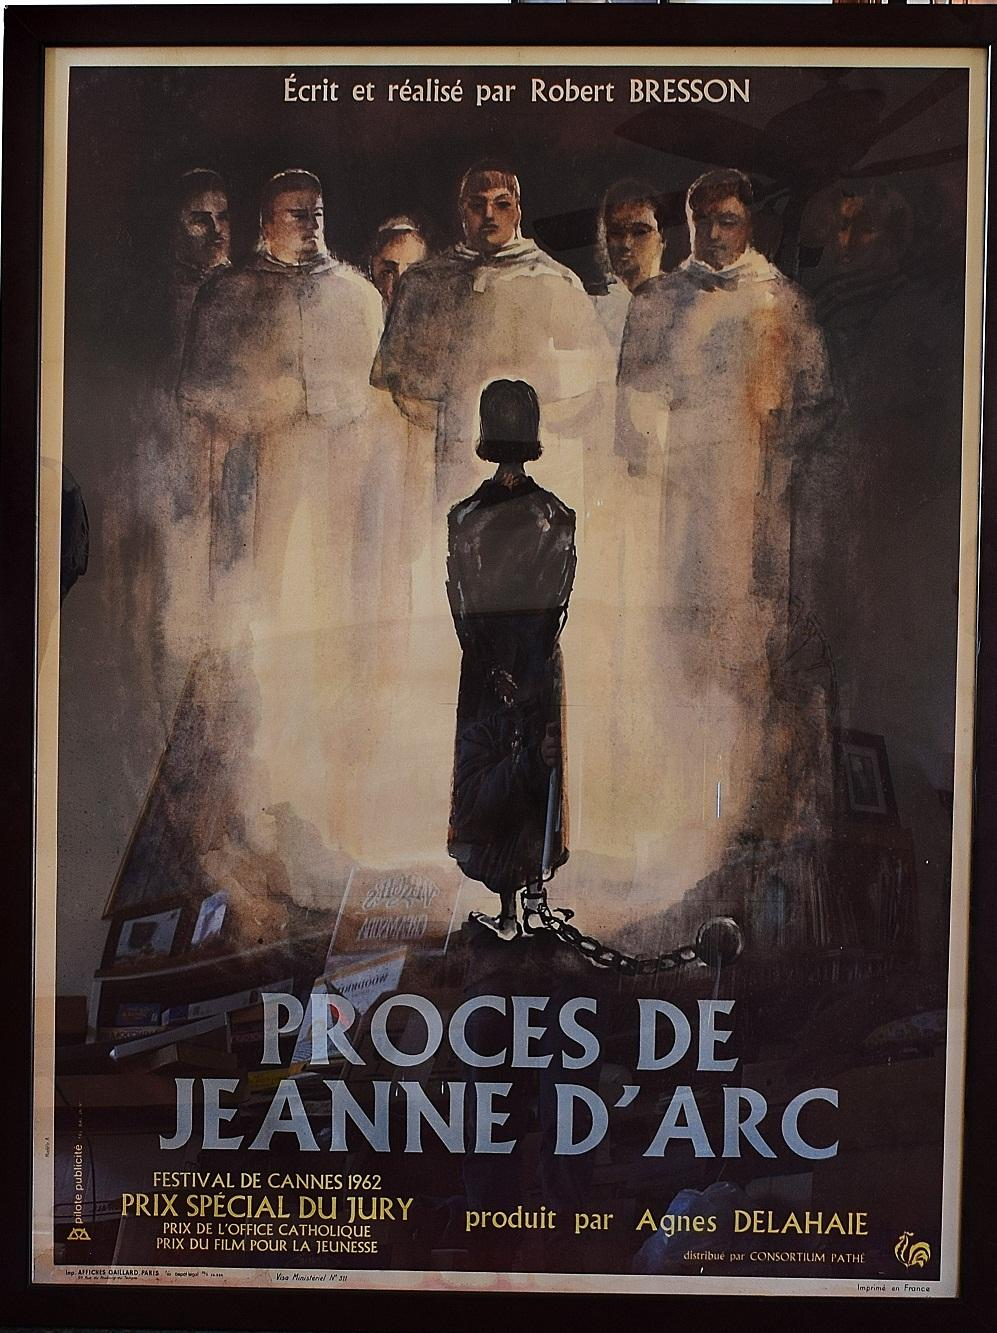 Le Procès De Jeanne D Arc : procès, jeanne, Proces, Jeanne, D'Arc, Trial, (Framed, Poster, Under, Plexiglass,, Actor, Director:, Florence, Delay,, Darbaud,, Philippe, Dreux,, Michel, Herubel,, Robert